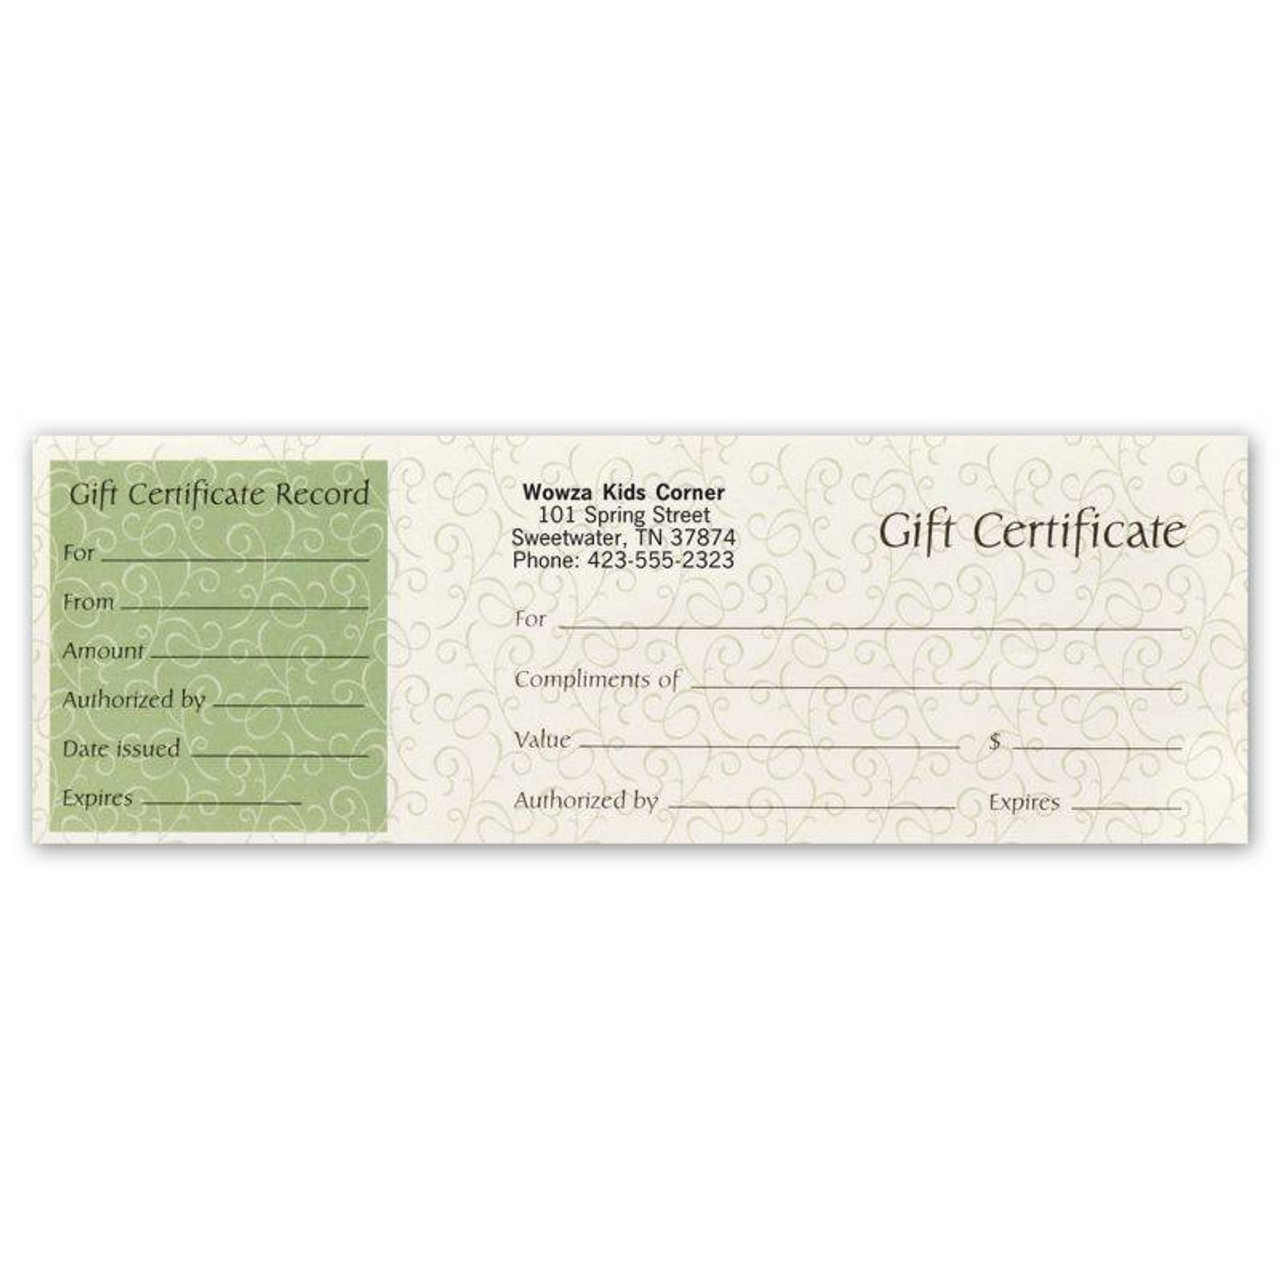 Gift Certificates, Paradise Green - Prenumbered - Padded, w/detachable stub and Matching Envelopes